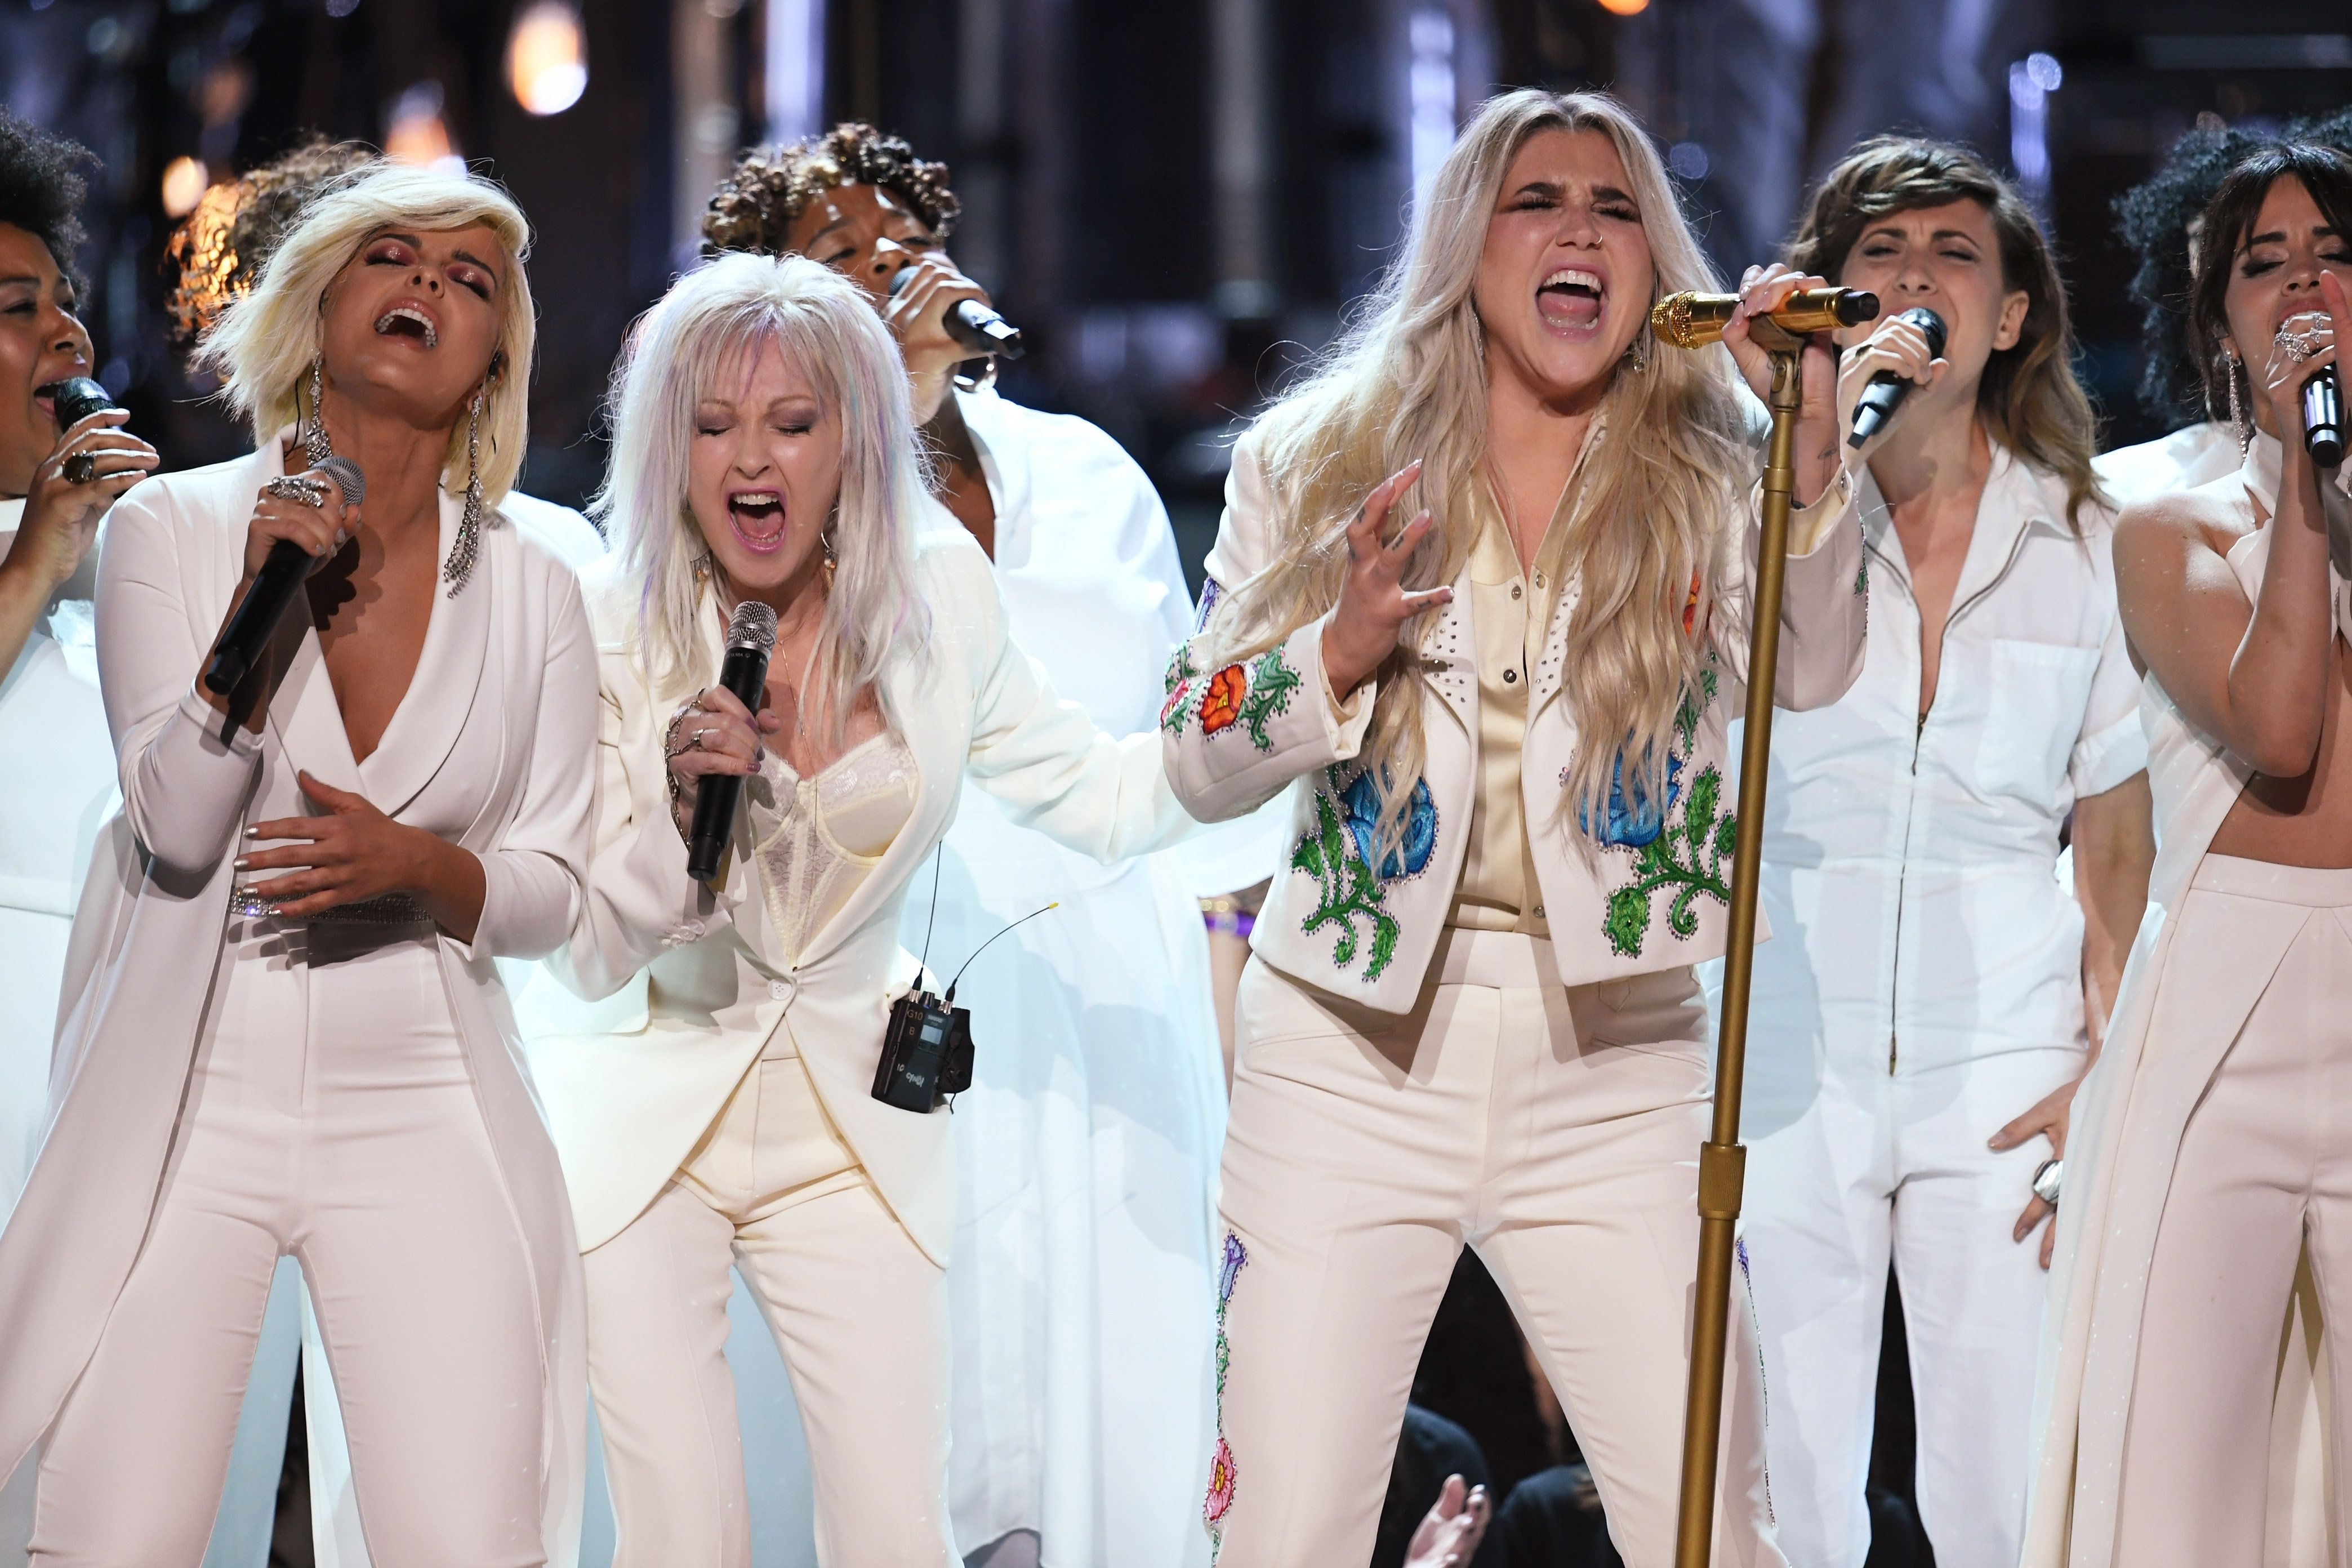 NEW YORK, NY - JANUARY 28:  Recording artist Kesha (C) performs with (L-R) Bebe Rexha, Cyndi Lauper and Camila Cabello onstage during the 60th Annual GRAMMY Awards at Madison Square Garden on January 28, 2018 in New York City.  (Photo by Kevin Winter/Getty Images for NARAS)